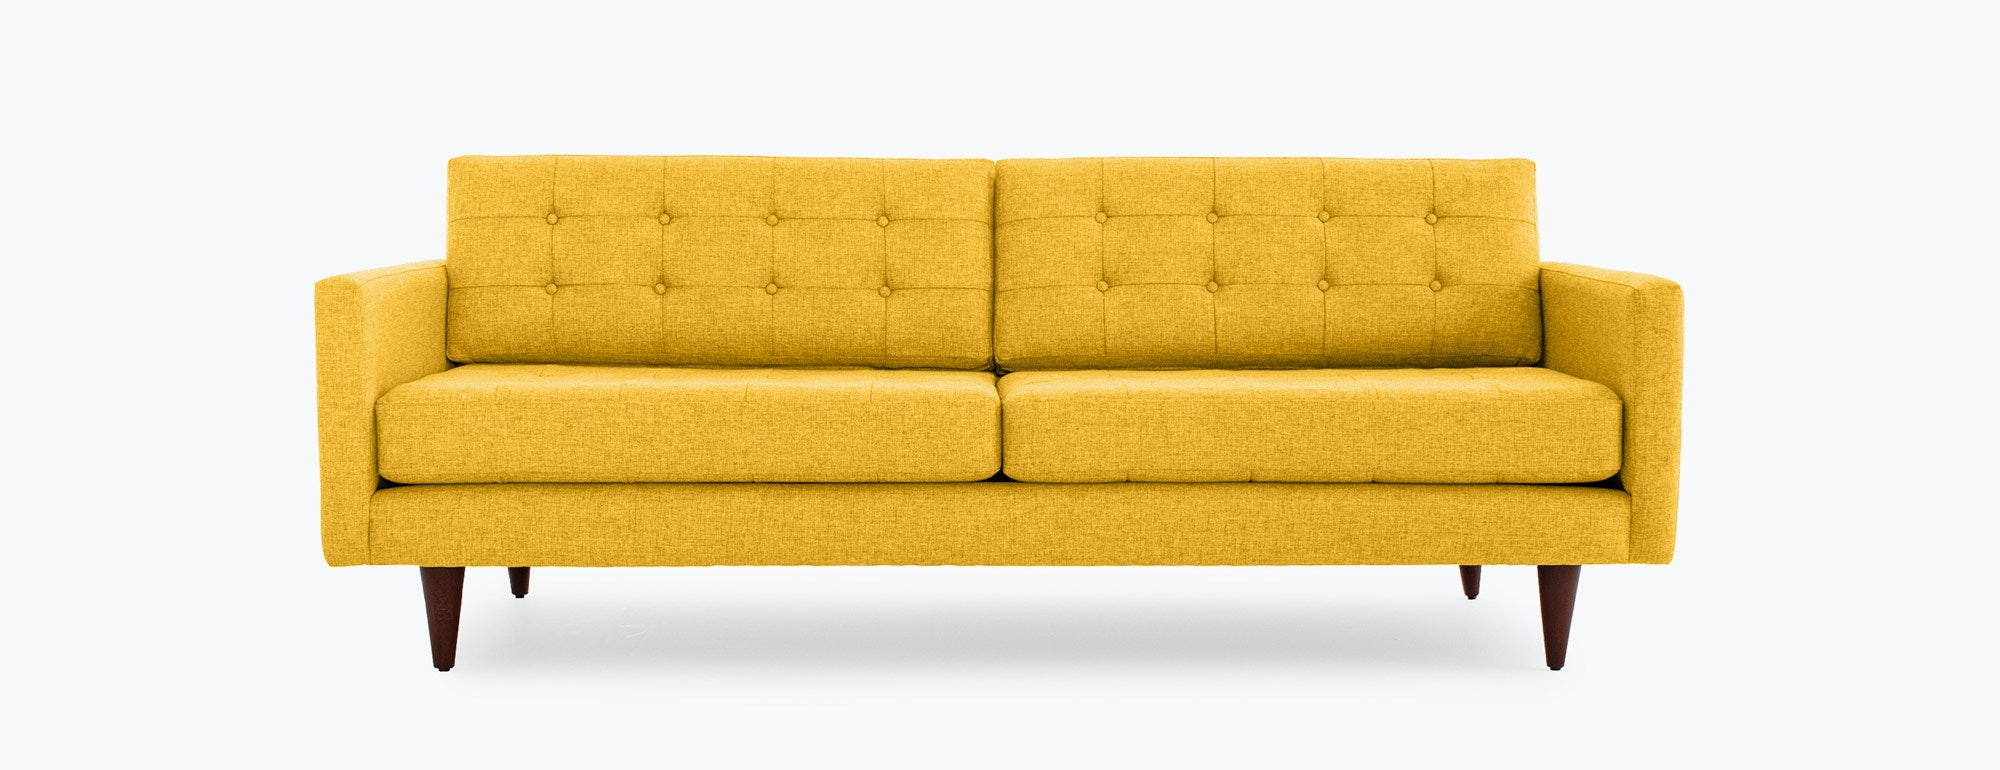 Eliot Sofa Joybird : hero eliot sofa 1 from joybird.com size 2000 x 770 jpeg 197kB